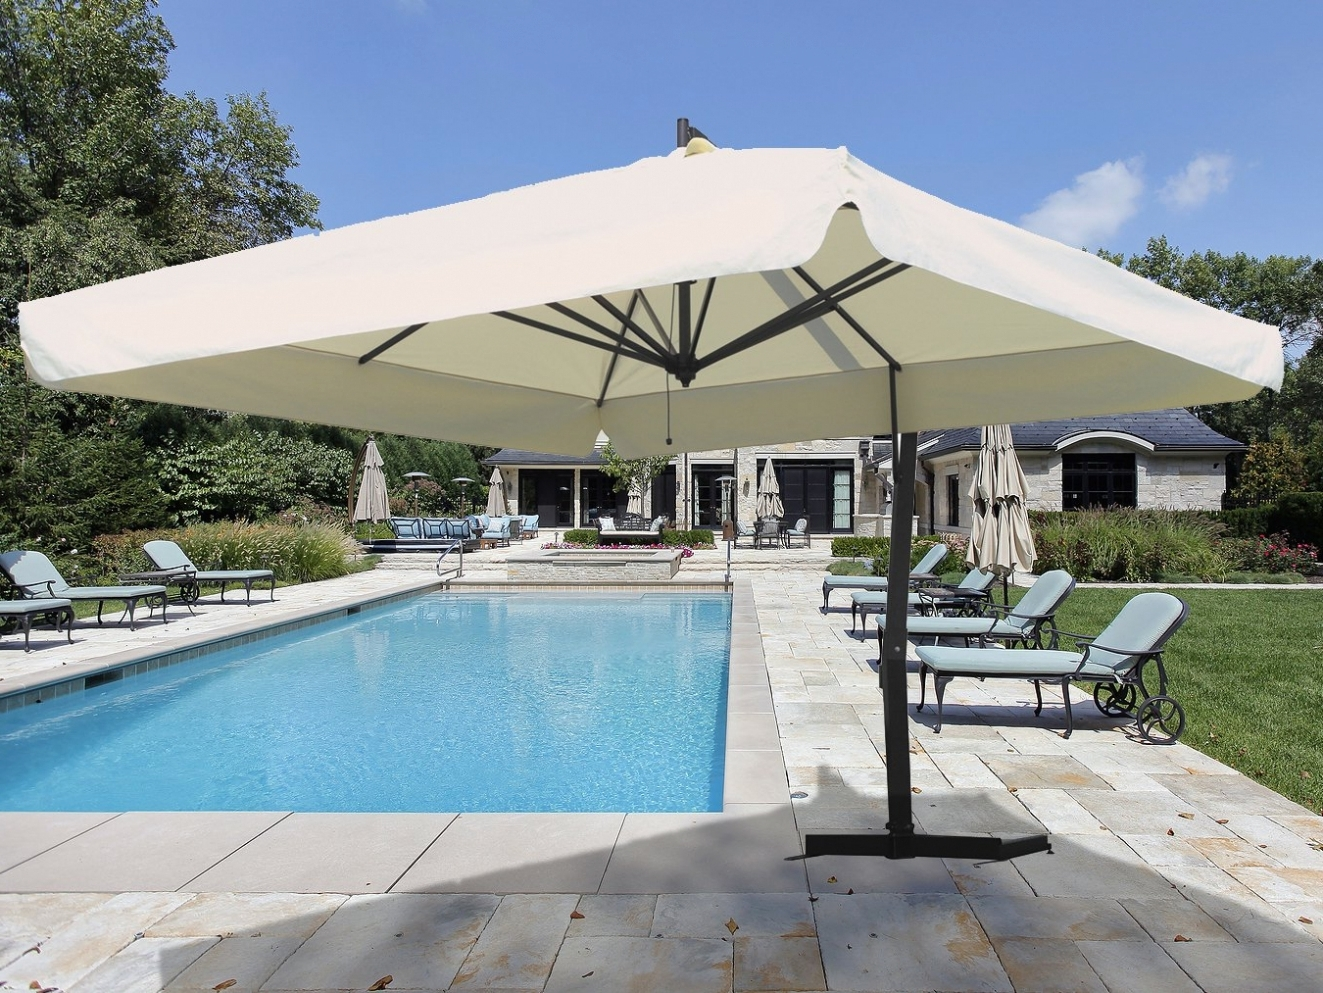 Recent Large Cantilever Patio Umbrellas – Theradmommy With Large Patio Umbrellas (Gallery 20 of 20)